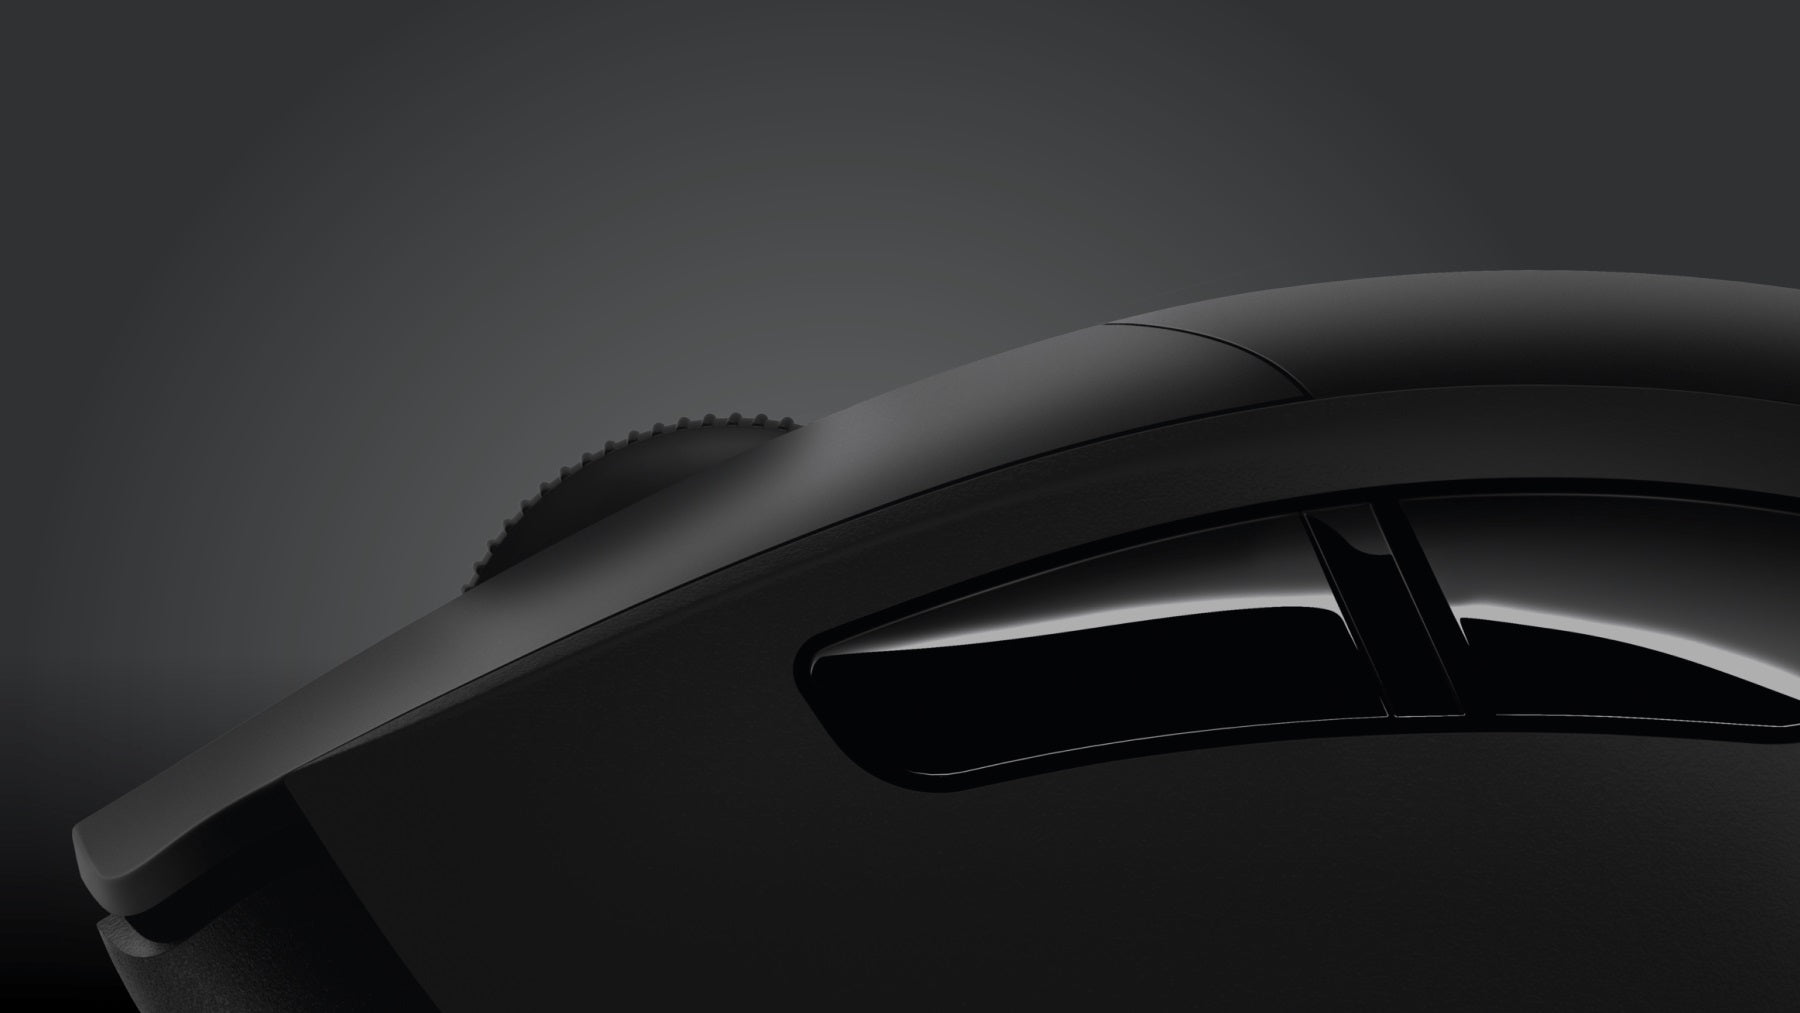 ERGONOMICALLY DESIGNED - G703 brings together supreme comfort, quality, and durability in a lightweight, ergonomically designed body. With rubber grips on the left and right sides to give you added control, the G703 was made to mold to your hand for long-lasting comfort and confidence during gameplay.